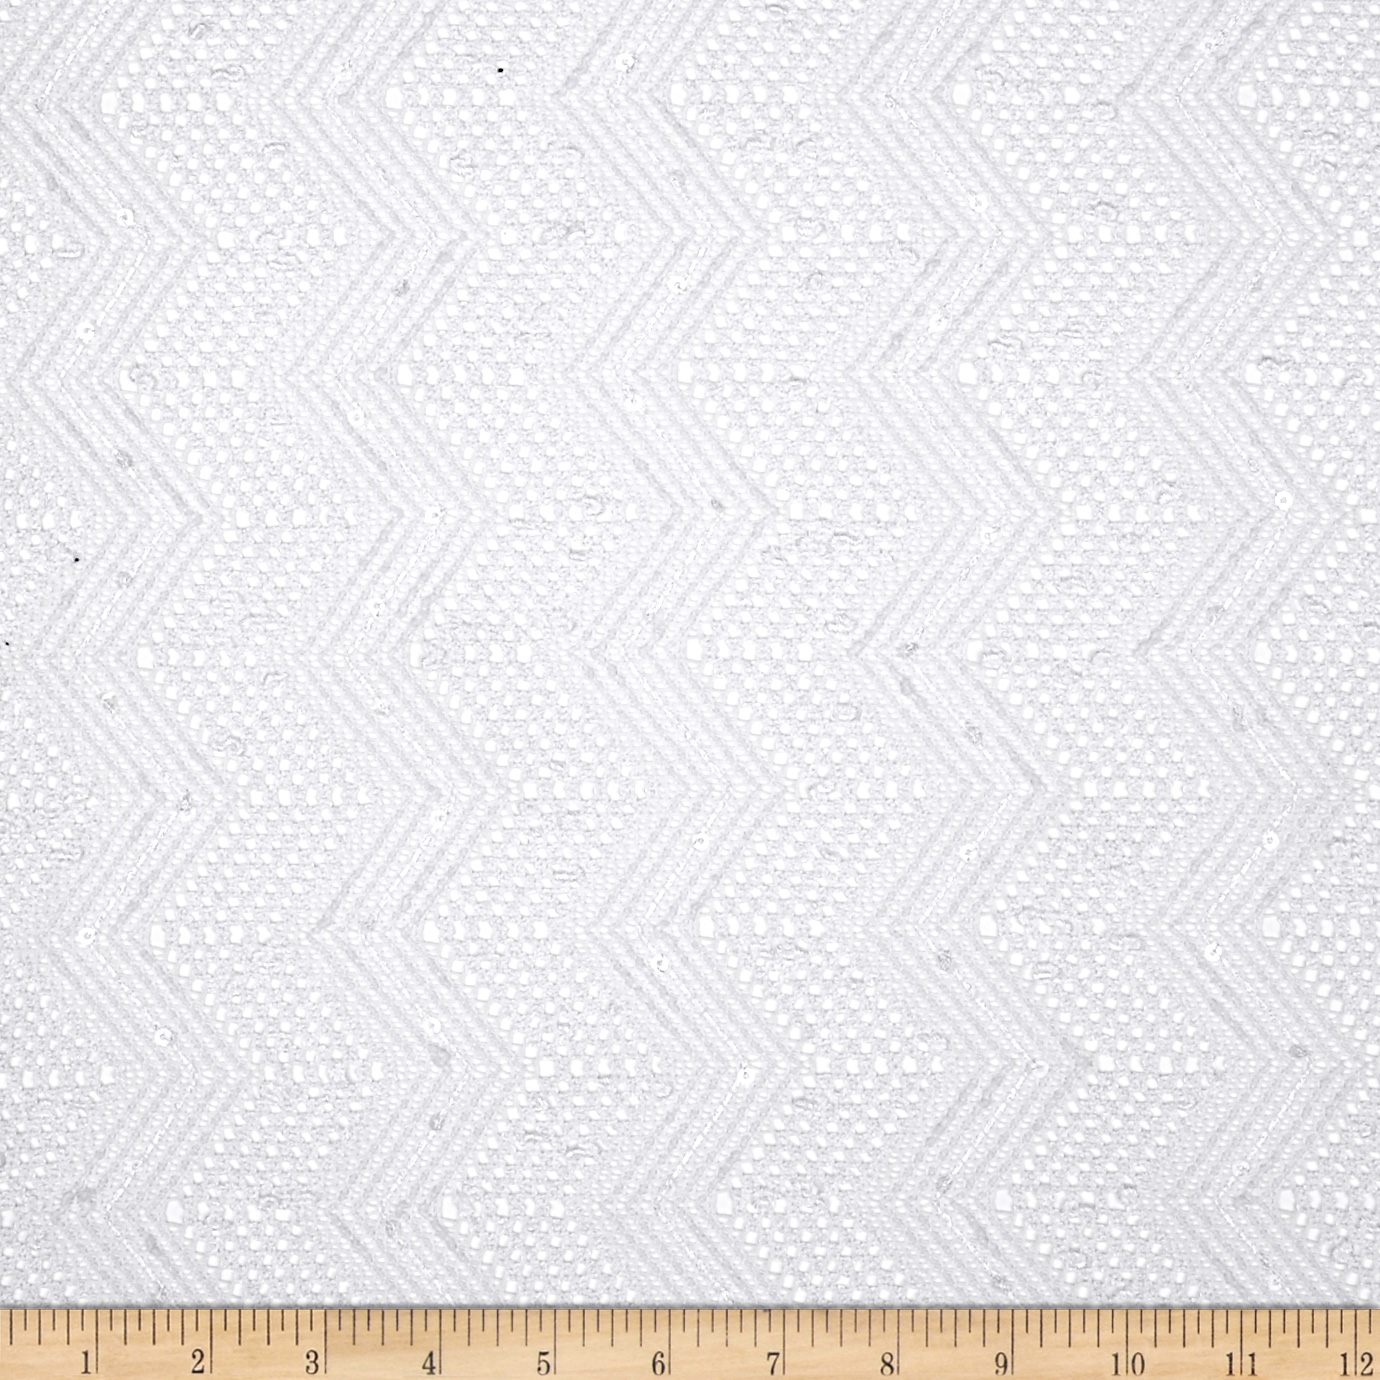 Seaside Lace Chevron White Fabric